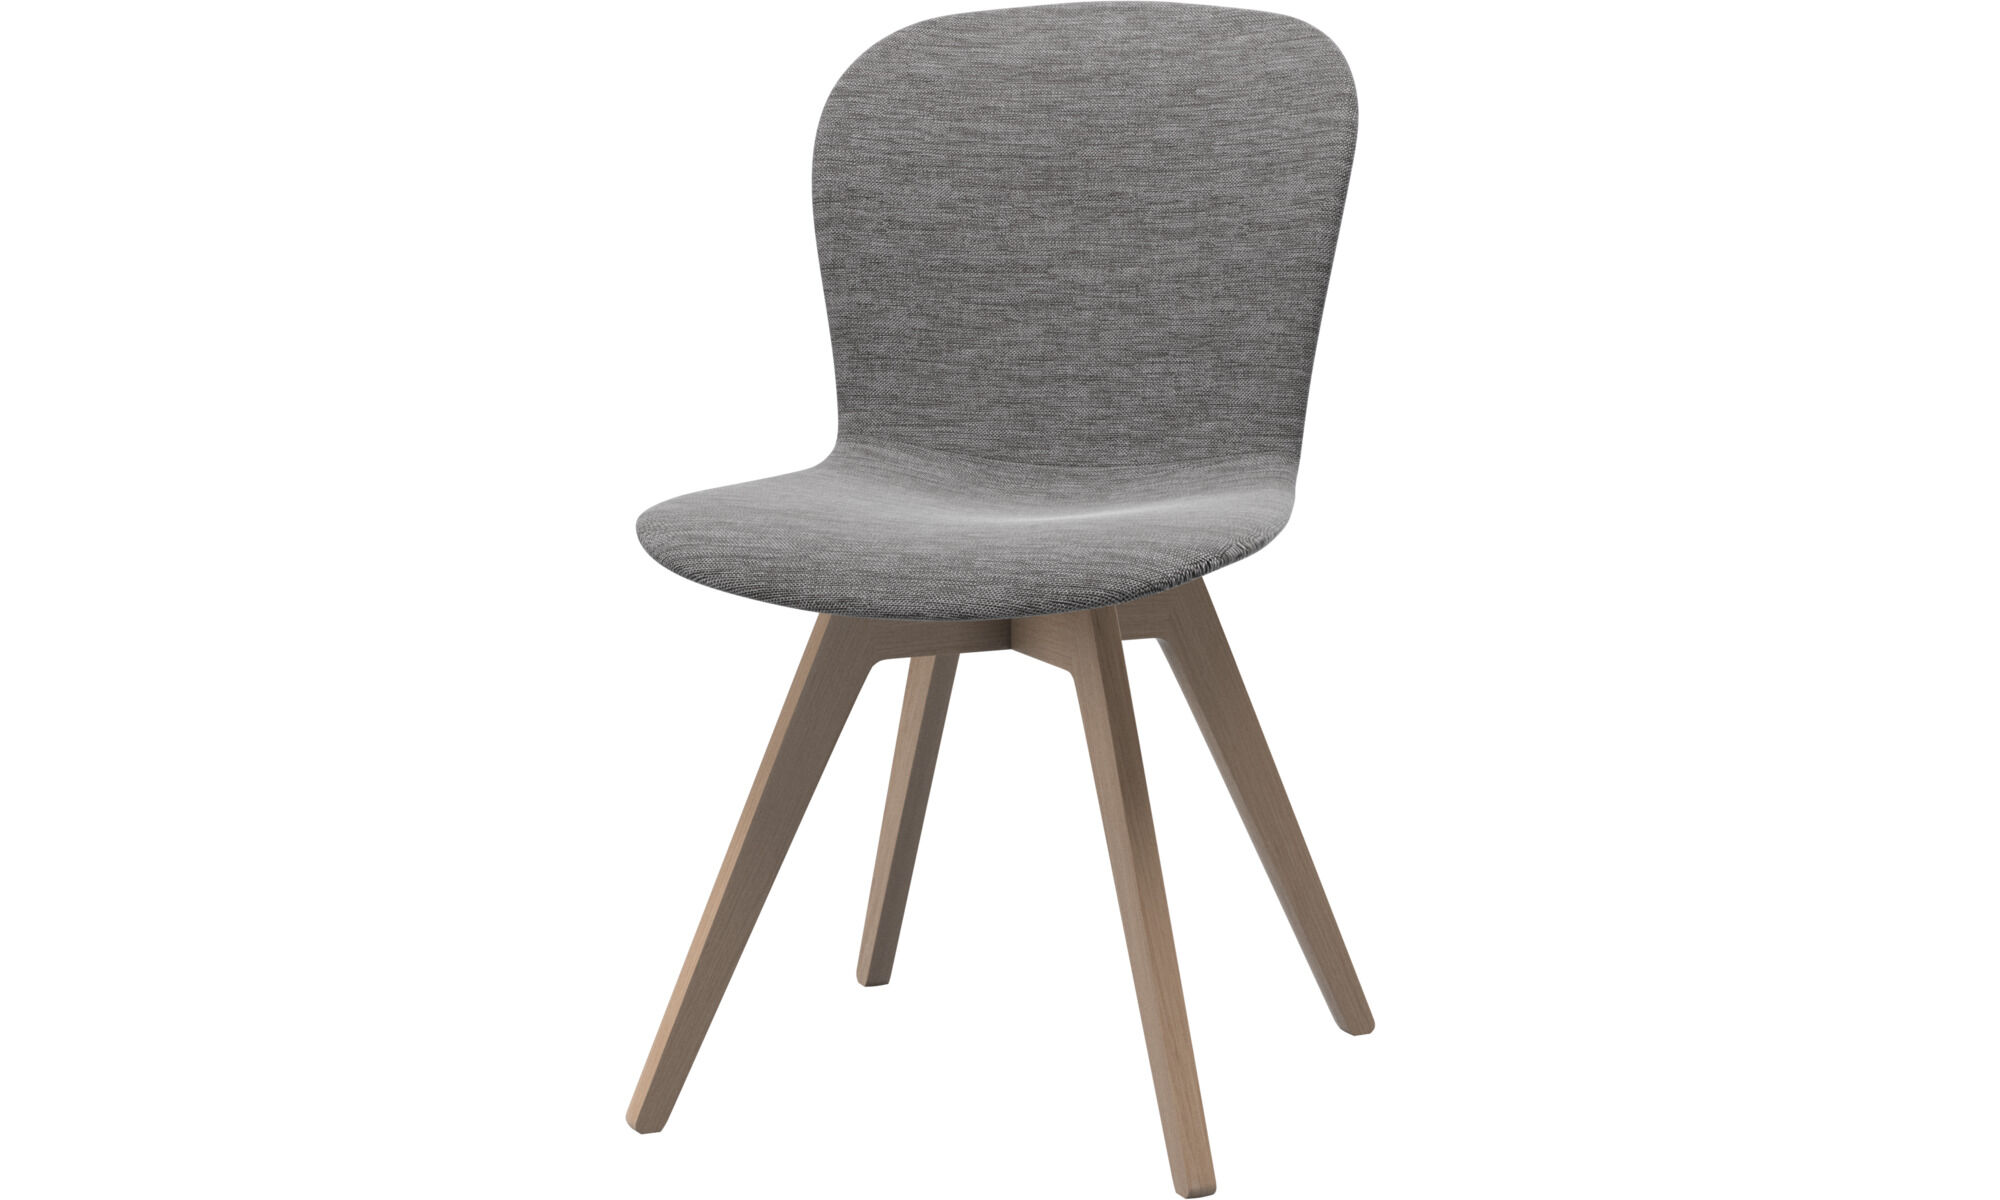 Exceptionnel Chaises   Chaise Adelaide   Gris   Tissu ...